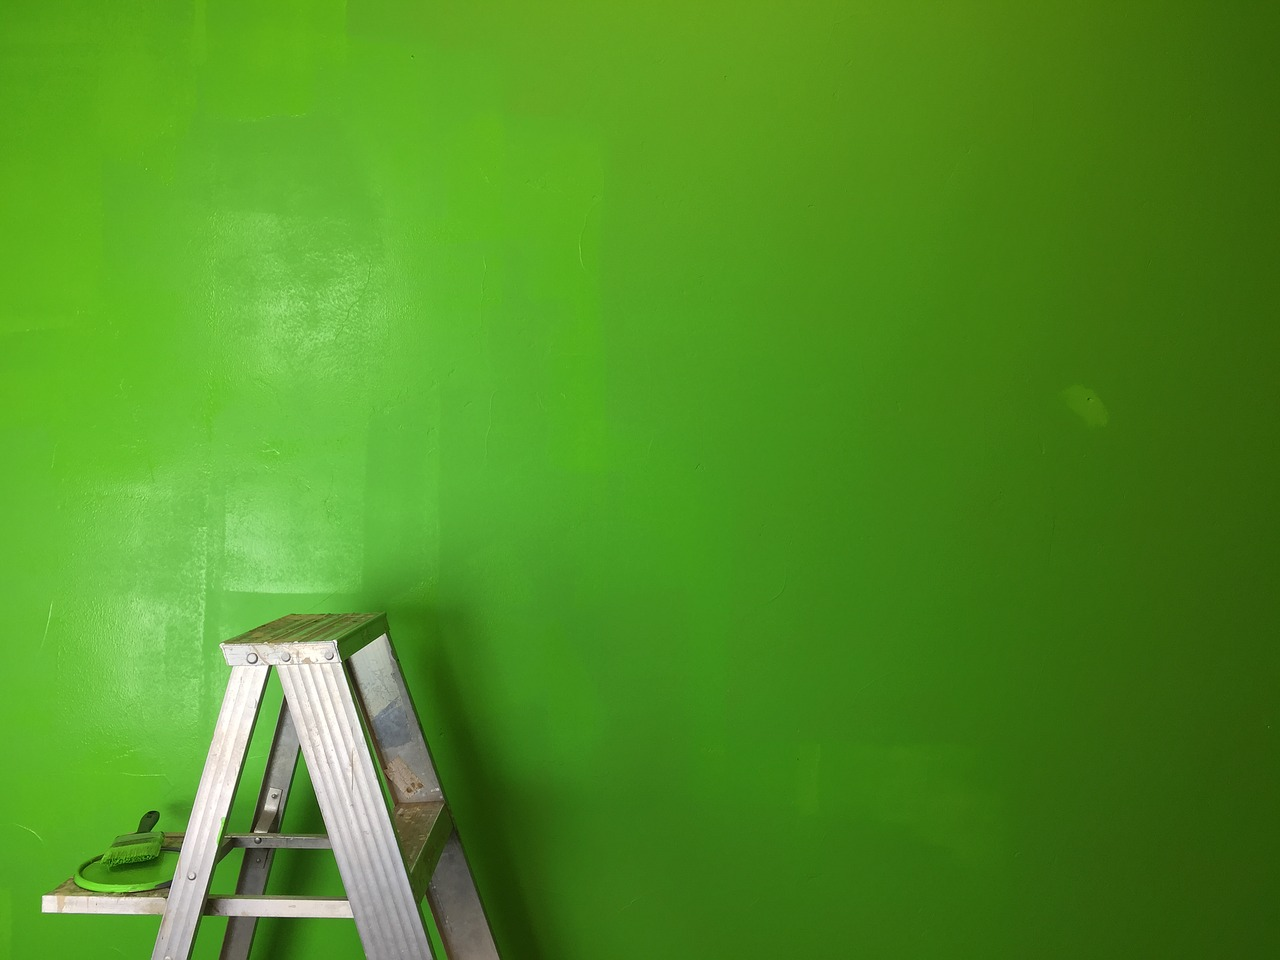 Classic Mistakes People Make on Ladders